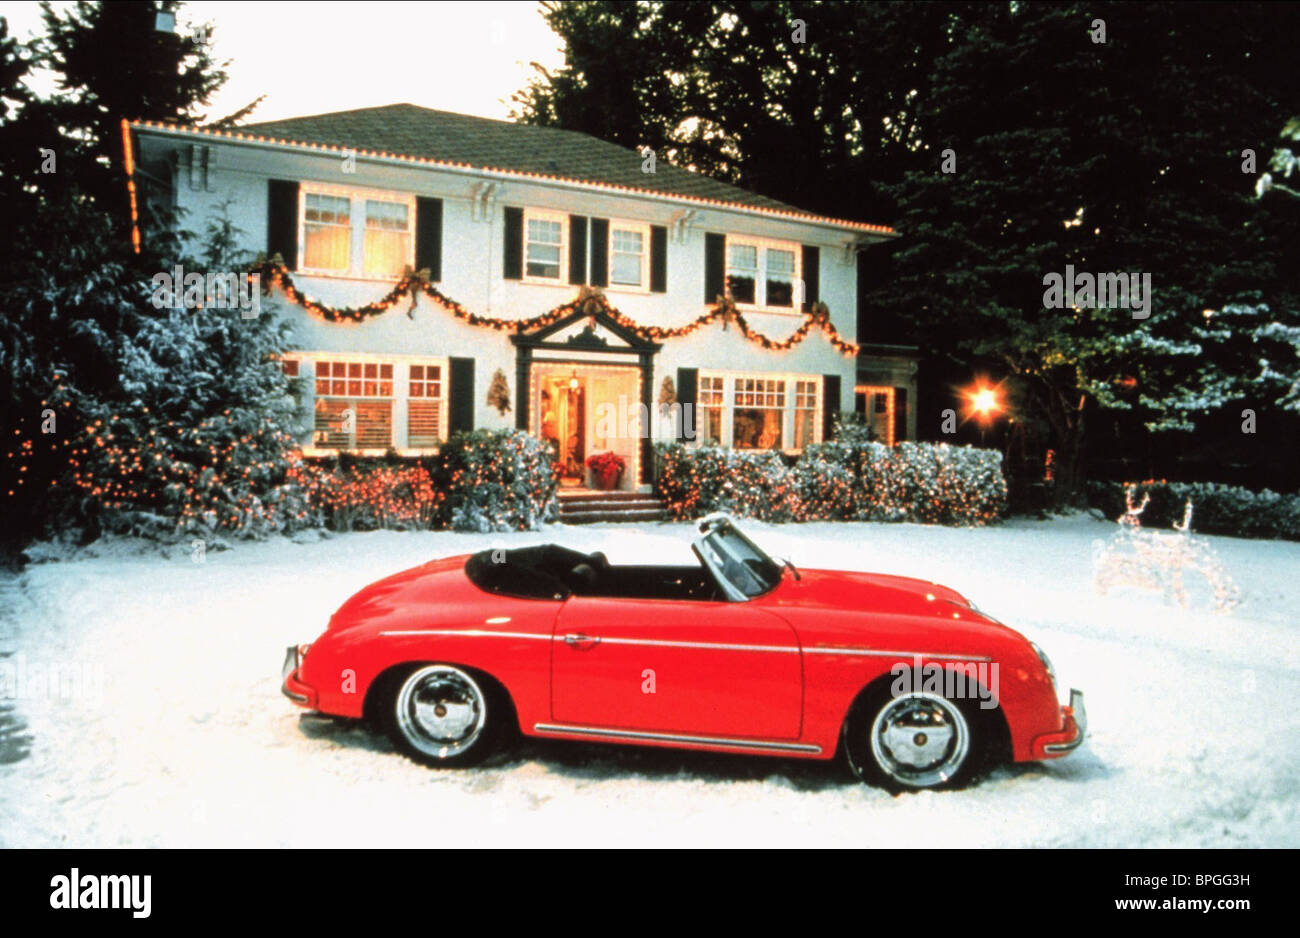 Ill Be Home For Christmas Movie.Car On Snow Covered Lawn I Ll Be Home For Christmas 1998